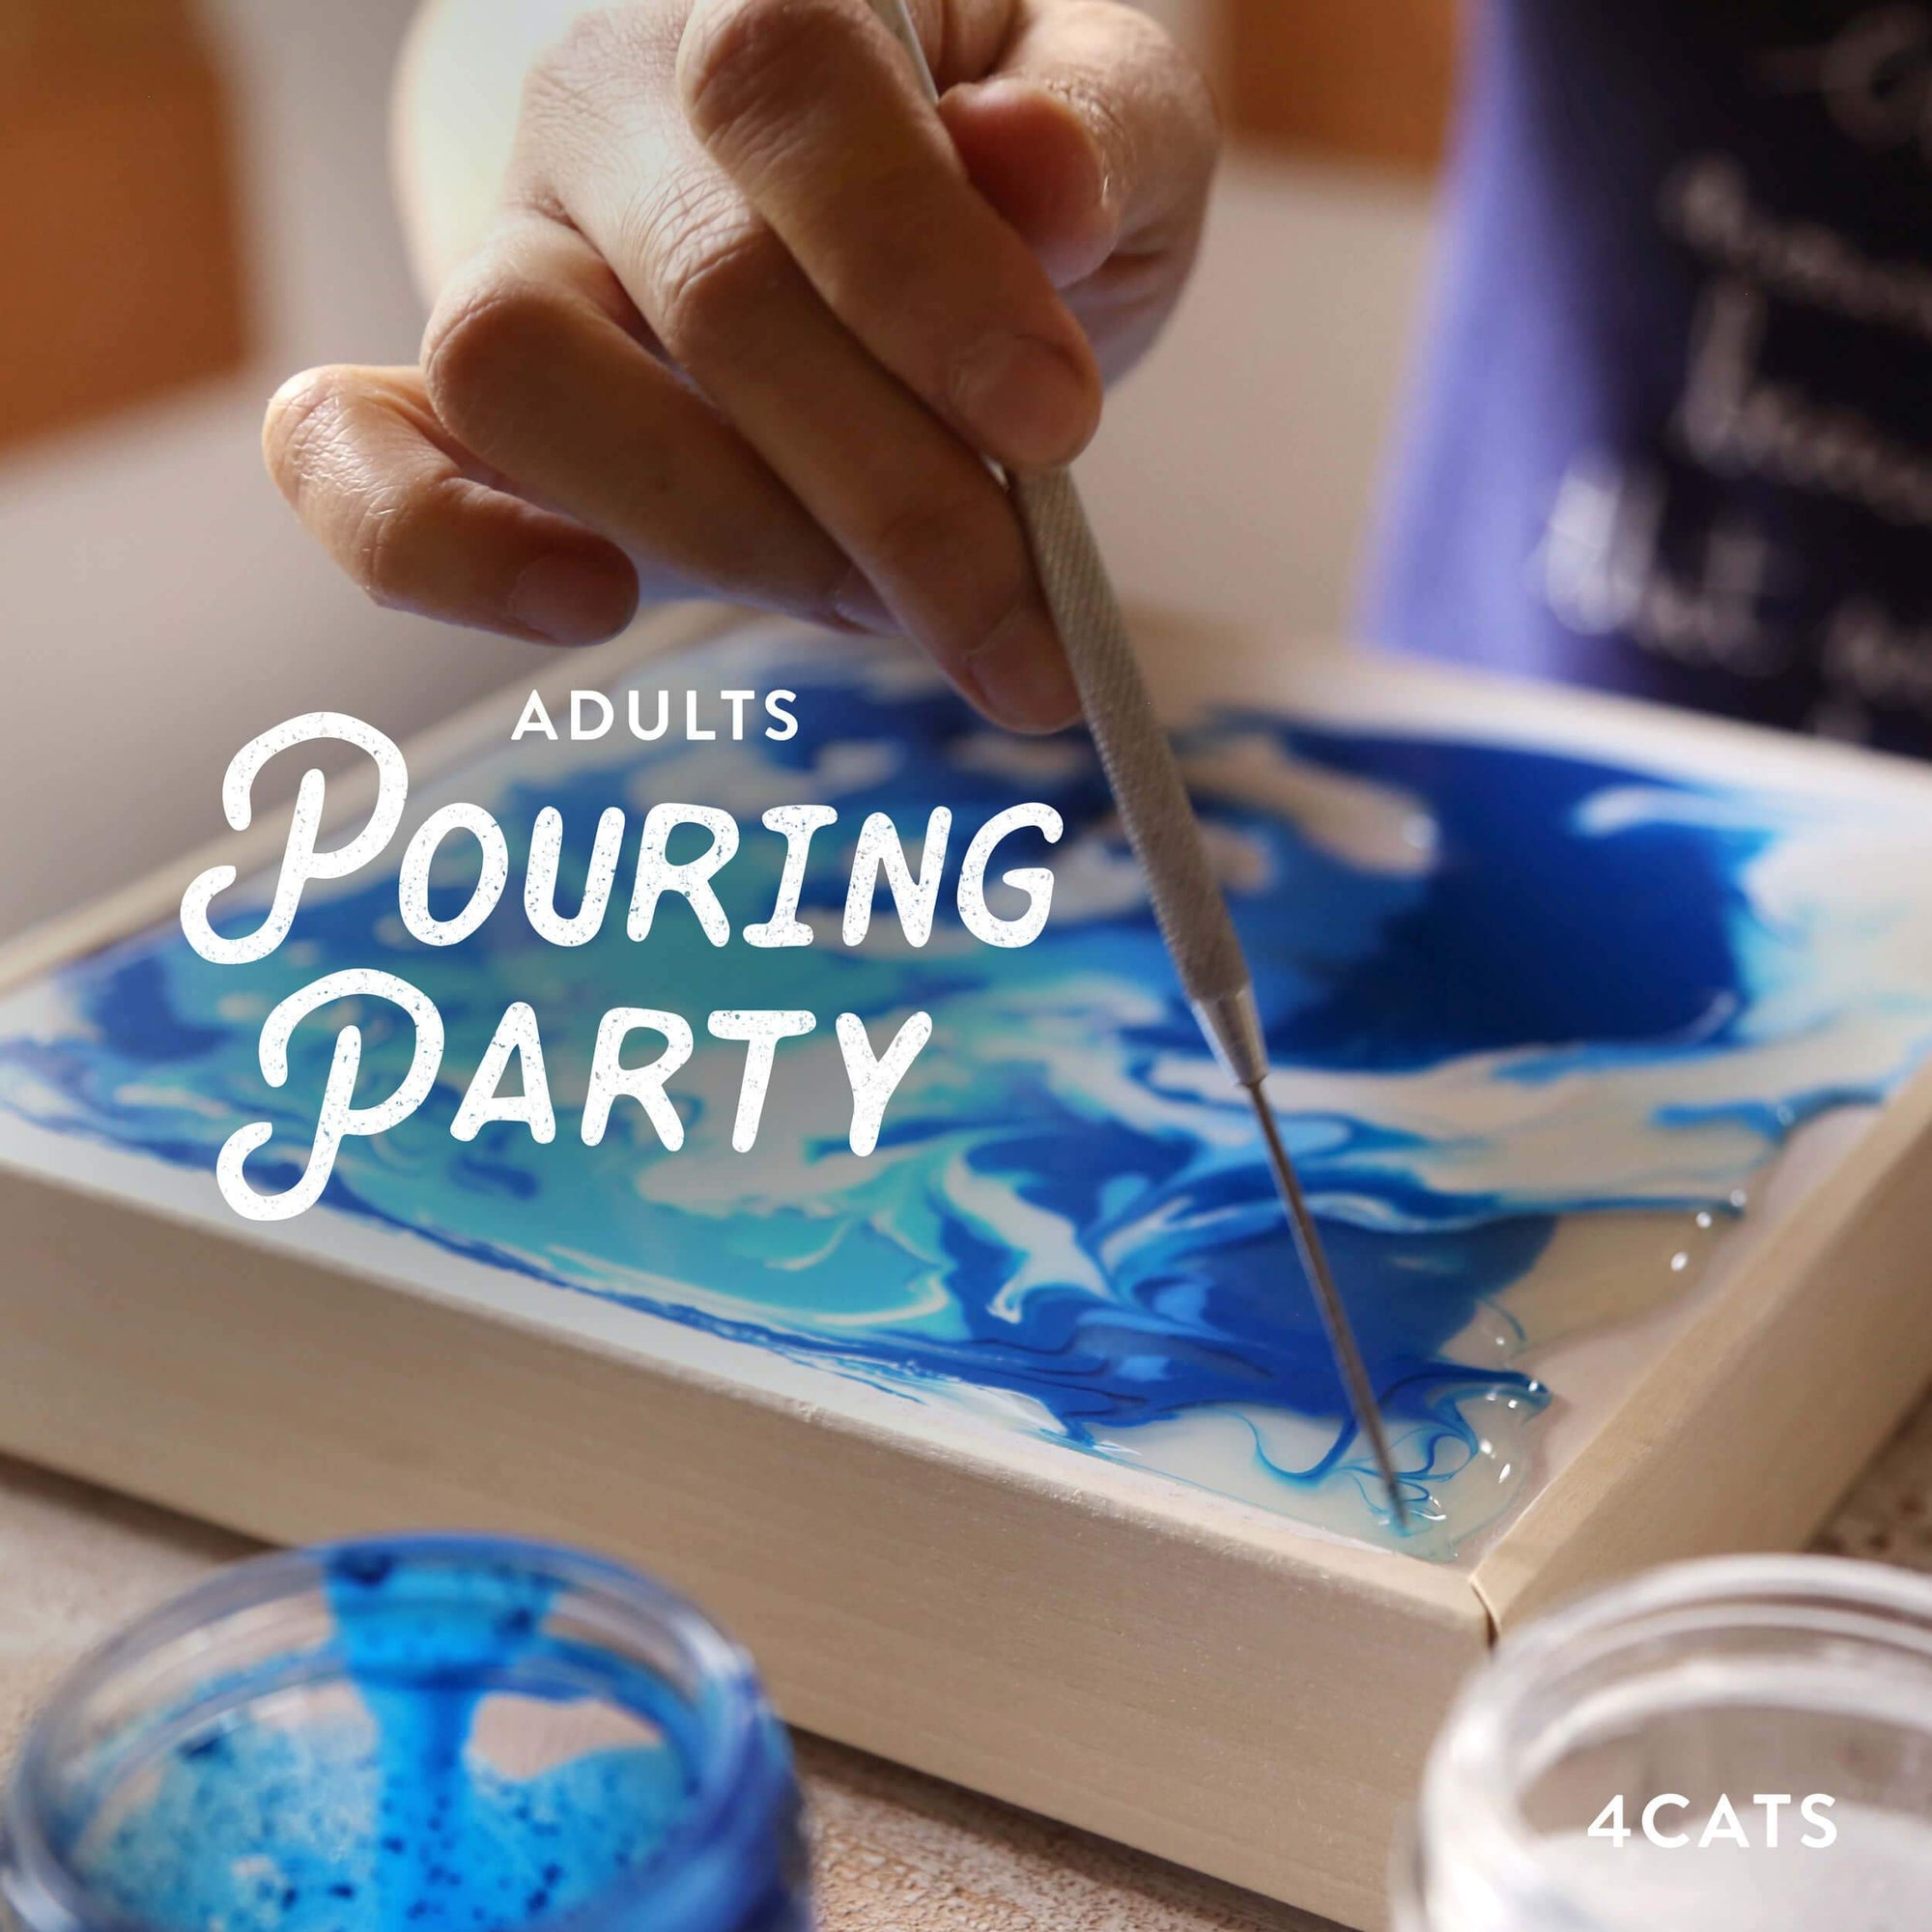 Adult Pouring Party